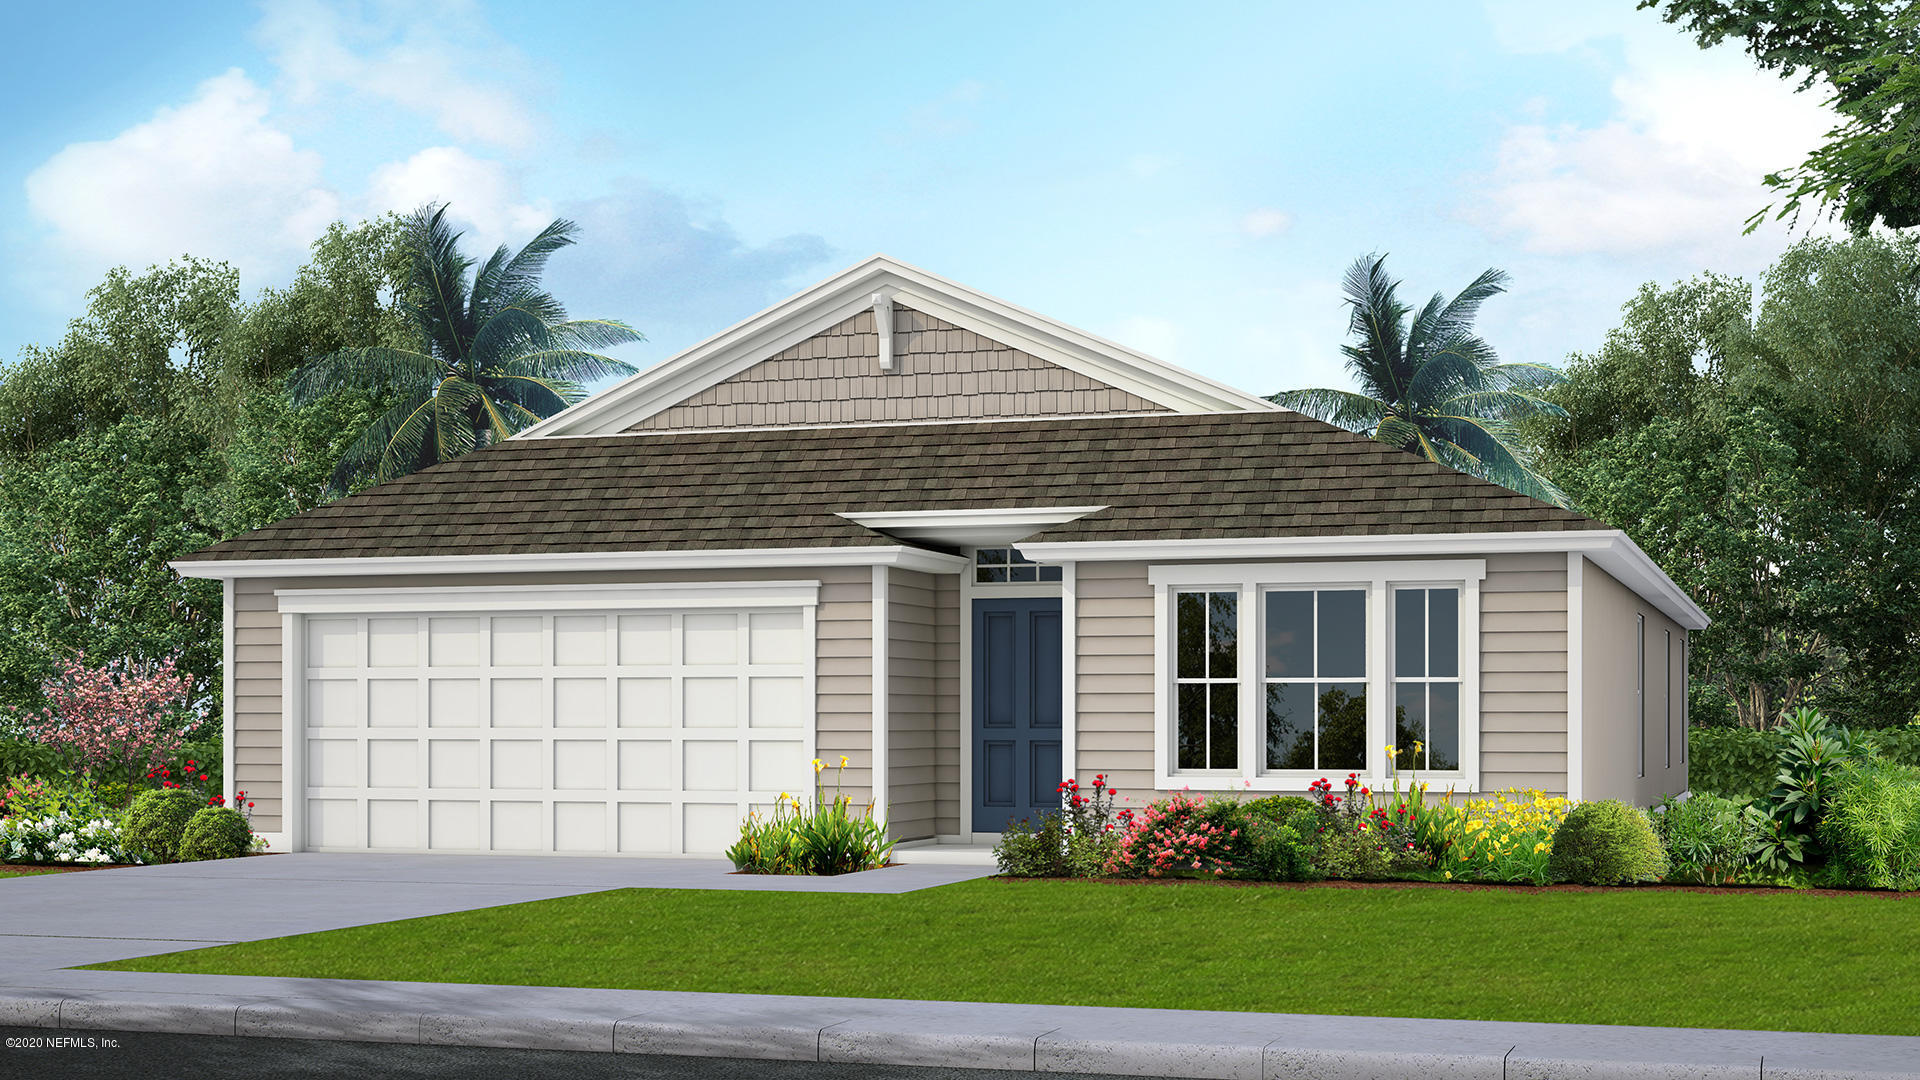 64 HICKORY RIDGE, ST AUGUSTINE, FLORIDA 32084, 4 Bedrooms Bedrooms, ,2 BathroomsBathrooms,Residential,For sale,HICKORY RIDGE,1059766